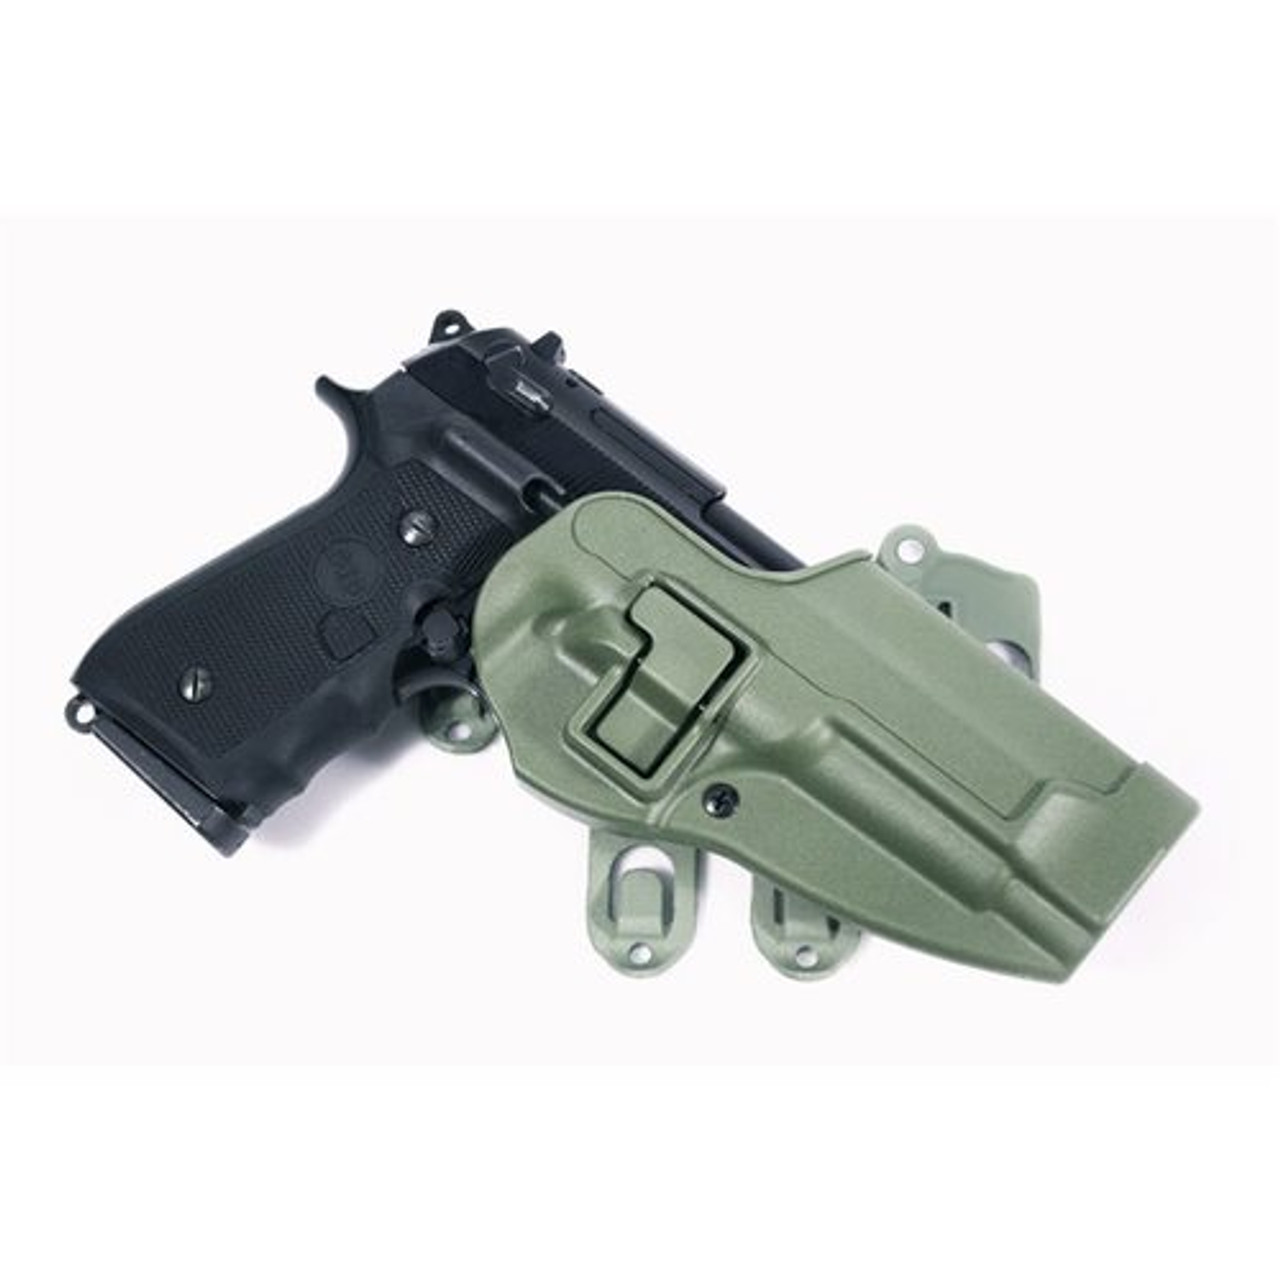 BLACKHAWK 40CL01 S.T.R.I.K.E.® PLATFORM WITH SERPA® HOLSTER, BERETTA ONLY, Ambidextrous adapter platform, available in Coyote Tan and Foliage Green